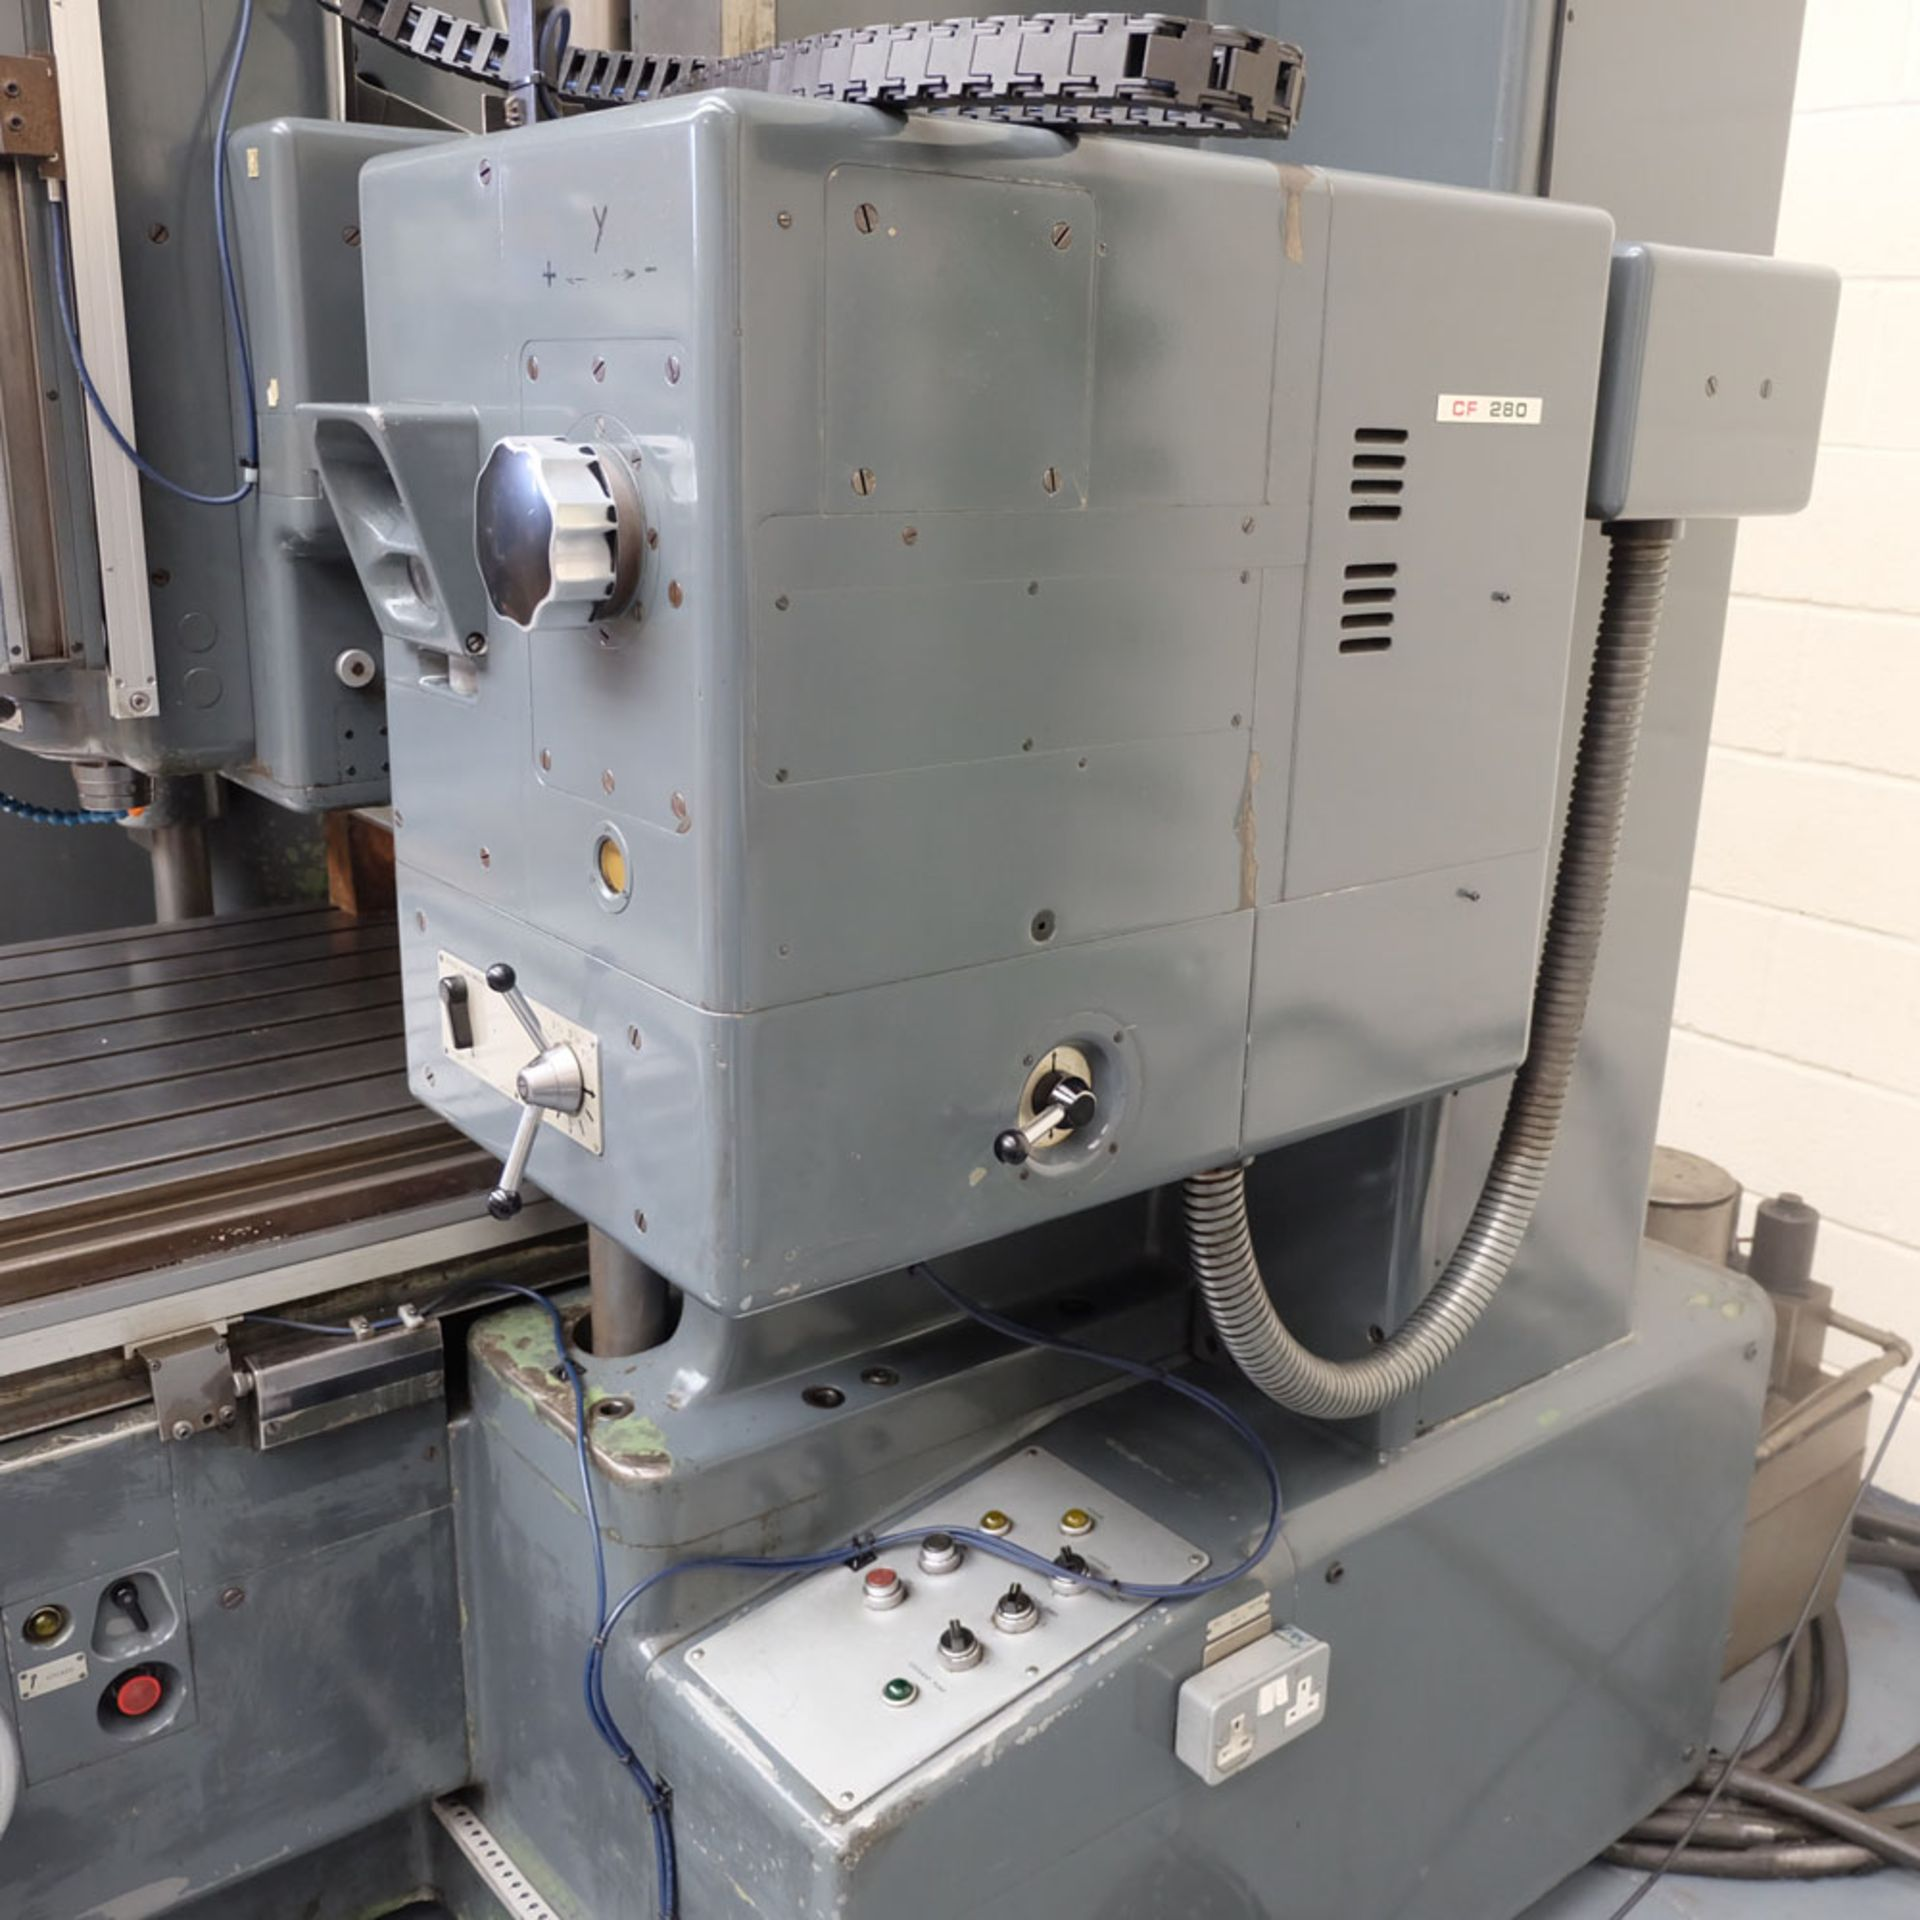 SIP Genevoise Hydroptic - 6A High Precision Jig Boring And Milling Machine. - Image 7 of 25